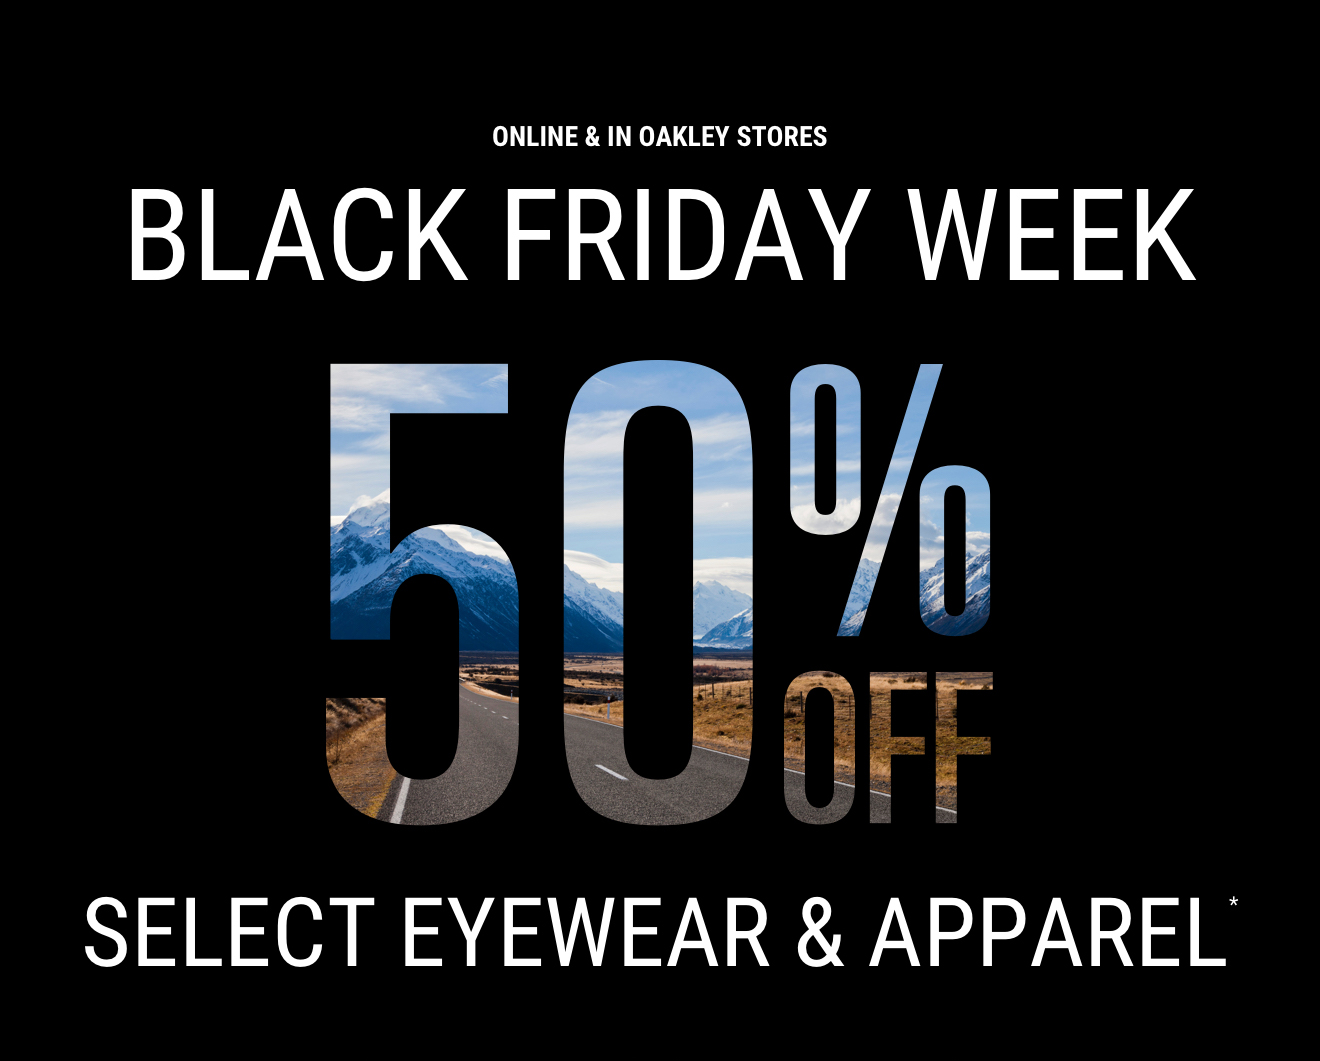 BLACK FRIDAY 50% OFF SELECT EYEWEAR AND APPAREL